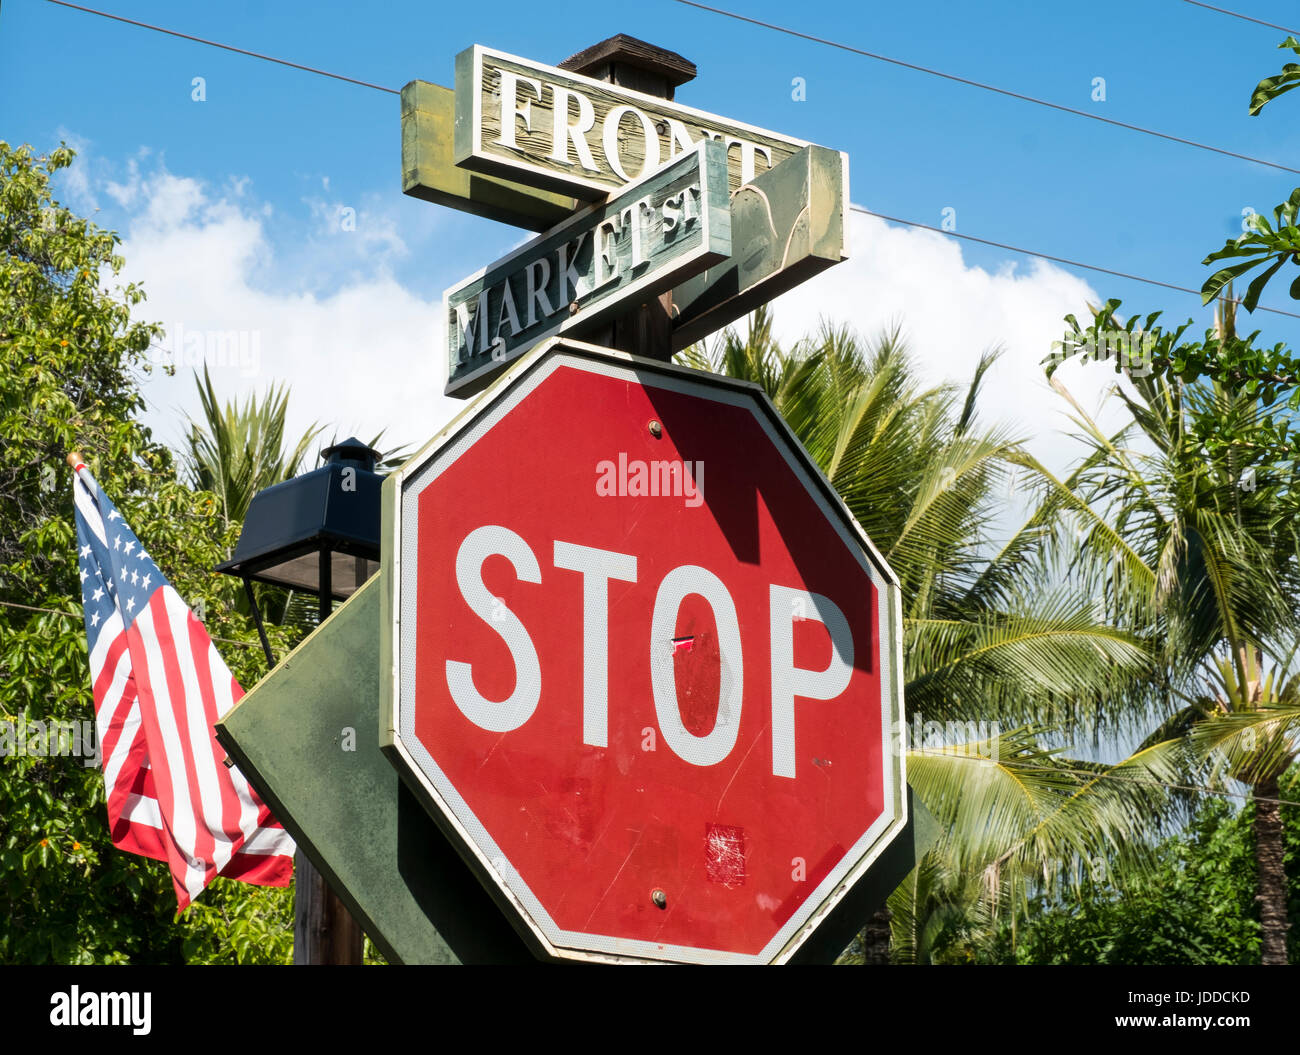 Street sign at the junction of Front street and Market Street, Maui, Hawaii. - Stock Image